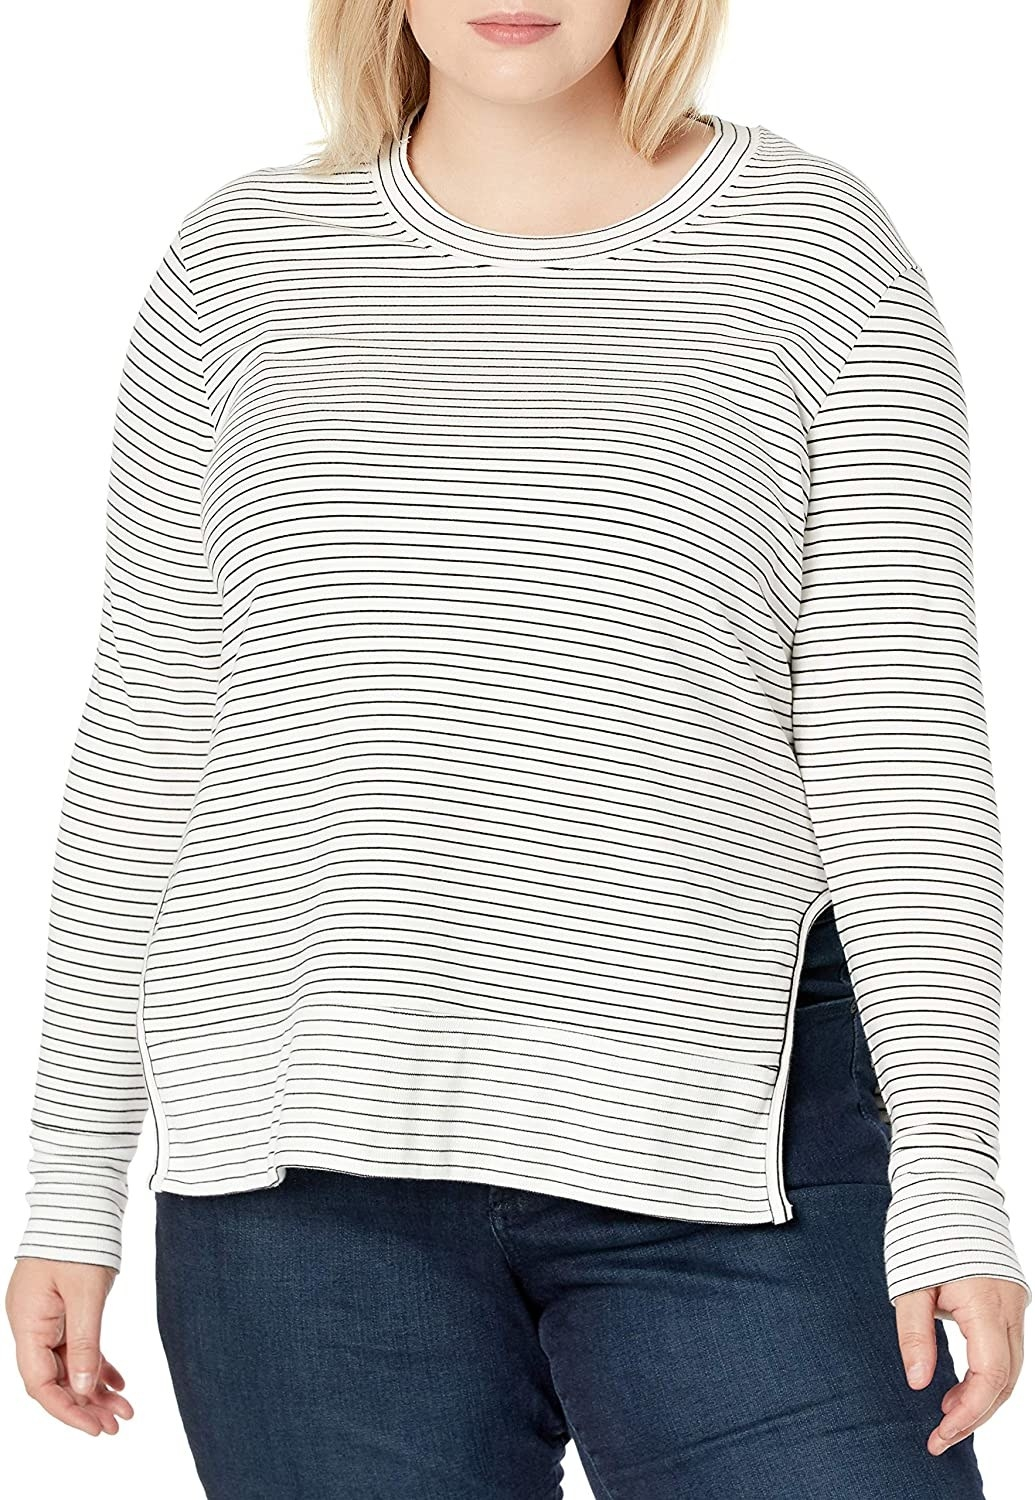 A model wearing the crewneck pullover in white with black stripes